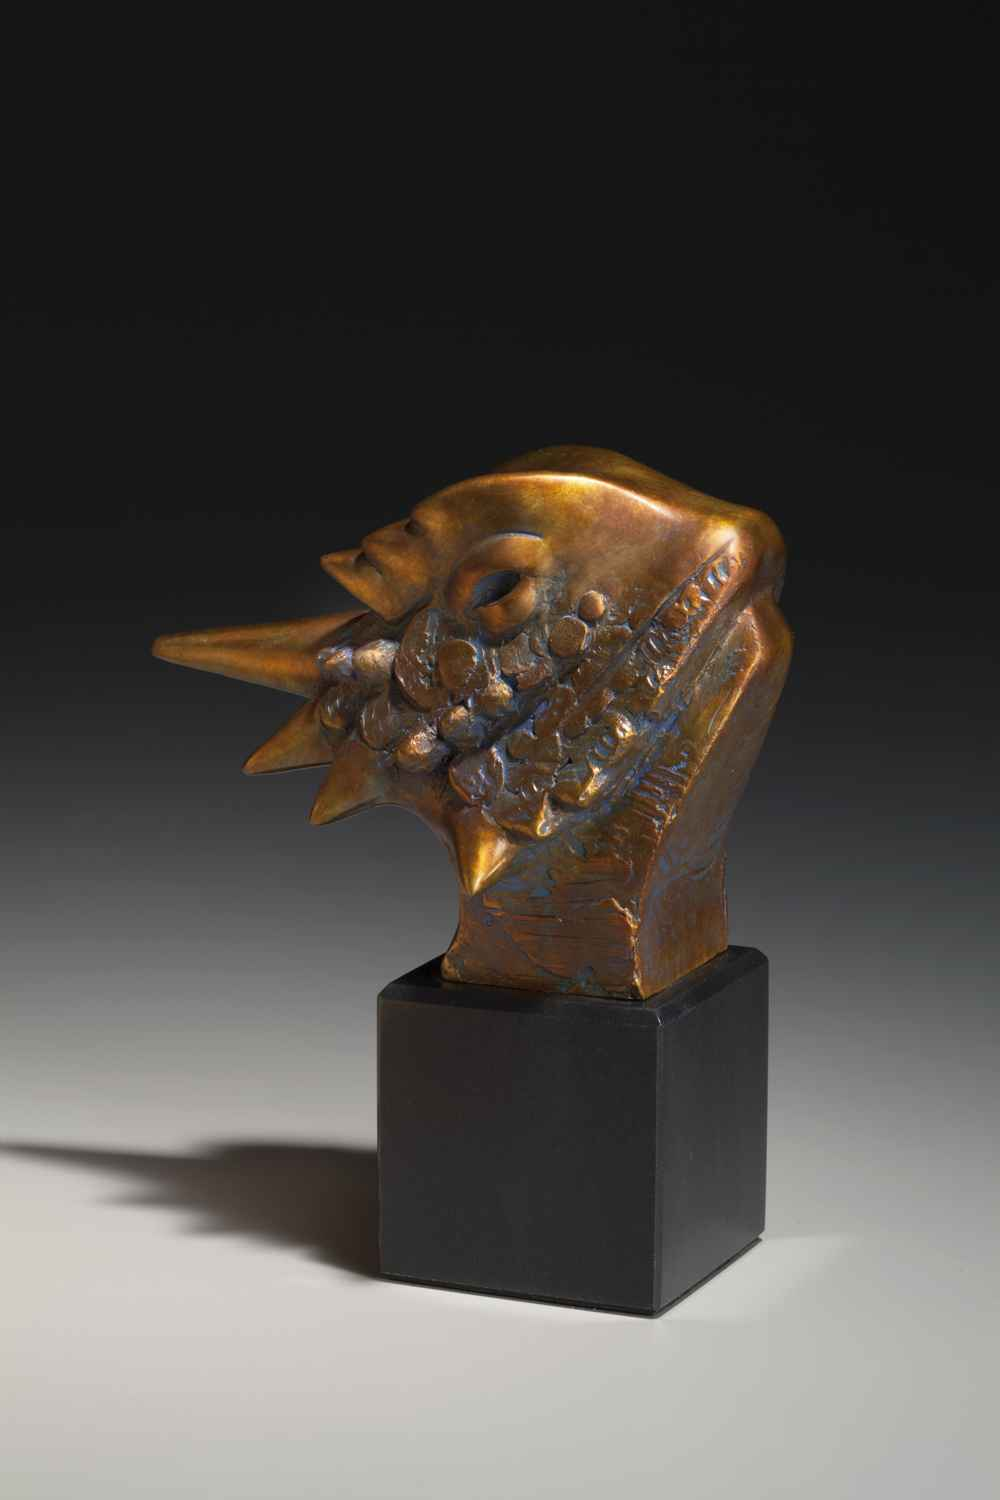 Horned Toad by  Tim Cherry - Masterpiece Online